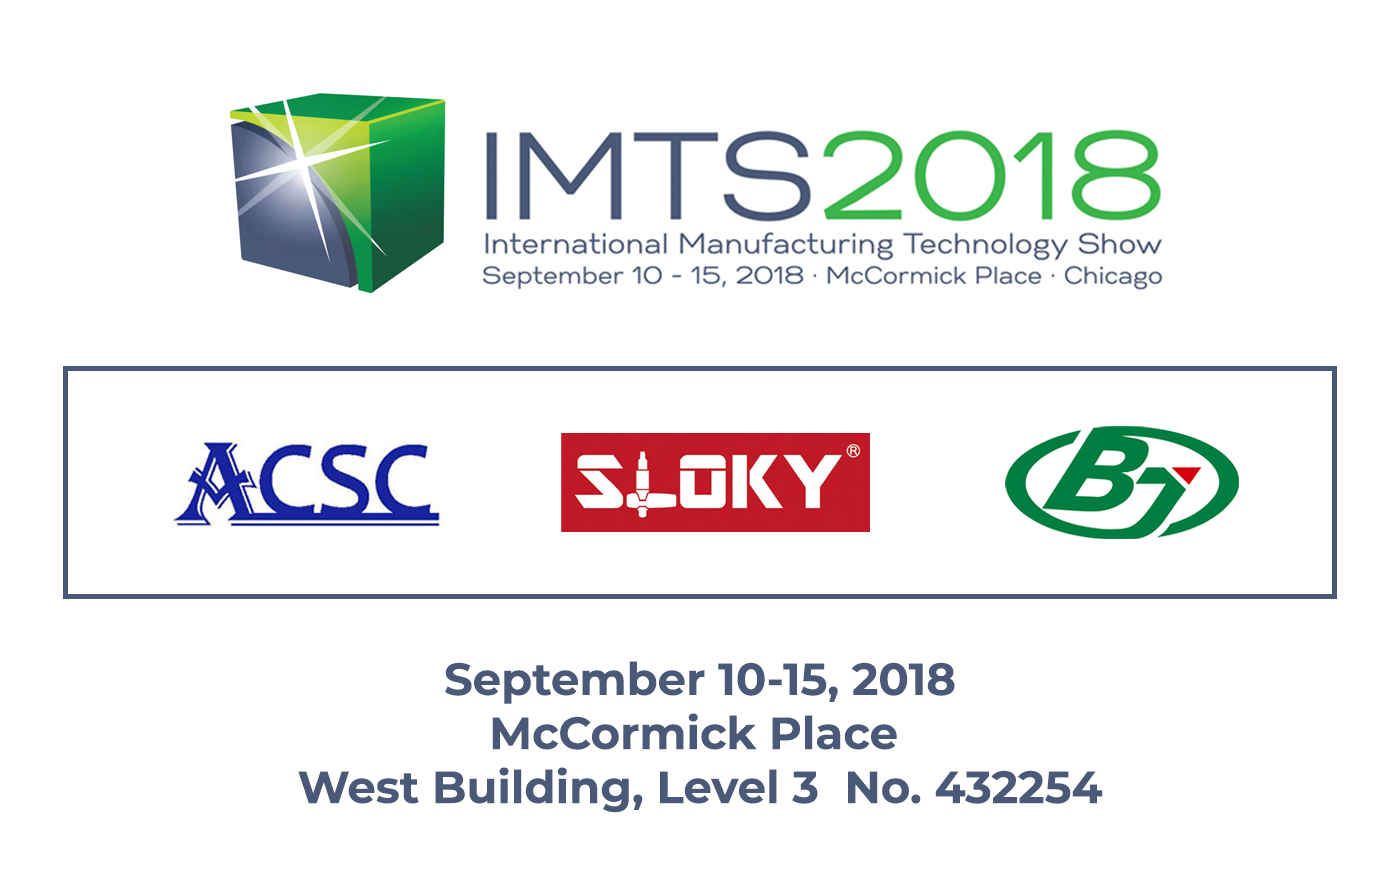 Sloky will attend IMTS 2018 in Chicago